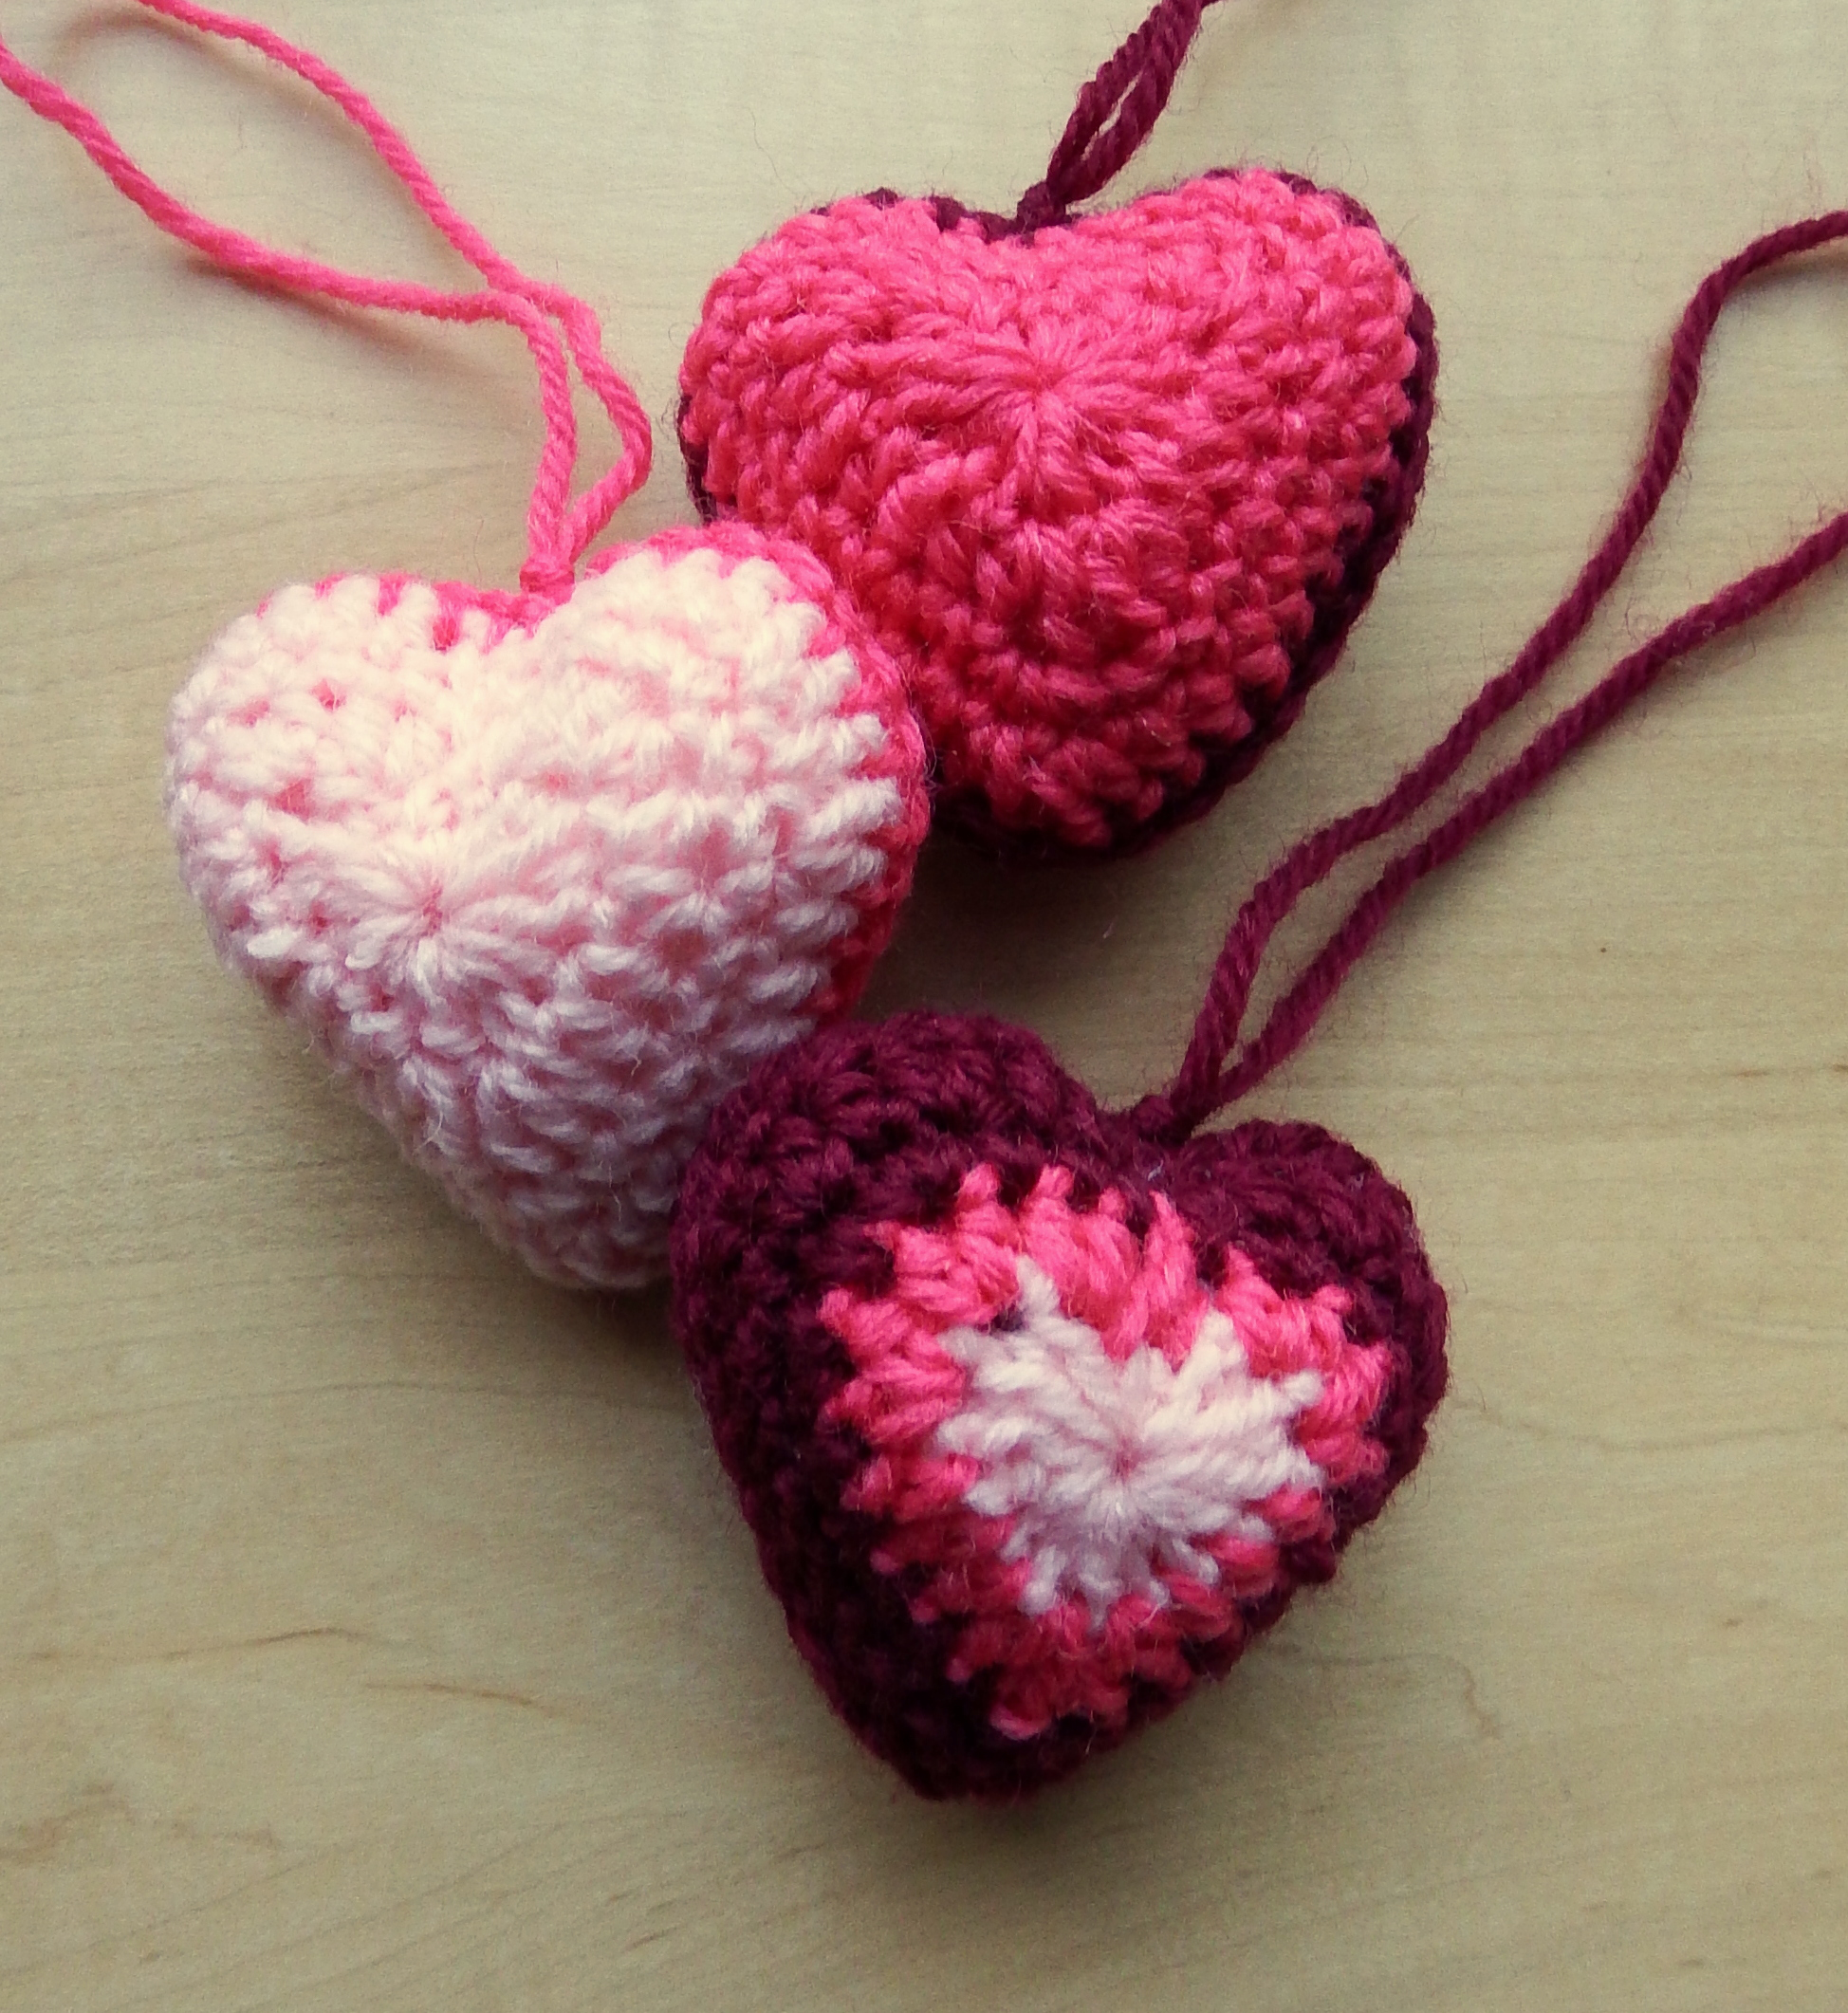 Hanging hearts make my day creative crochet heart decorations free pattern from make my day creative bankloansurffo Images